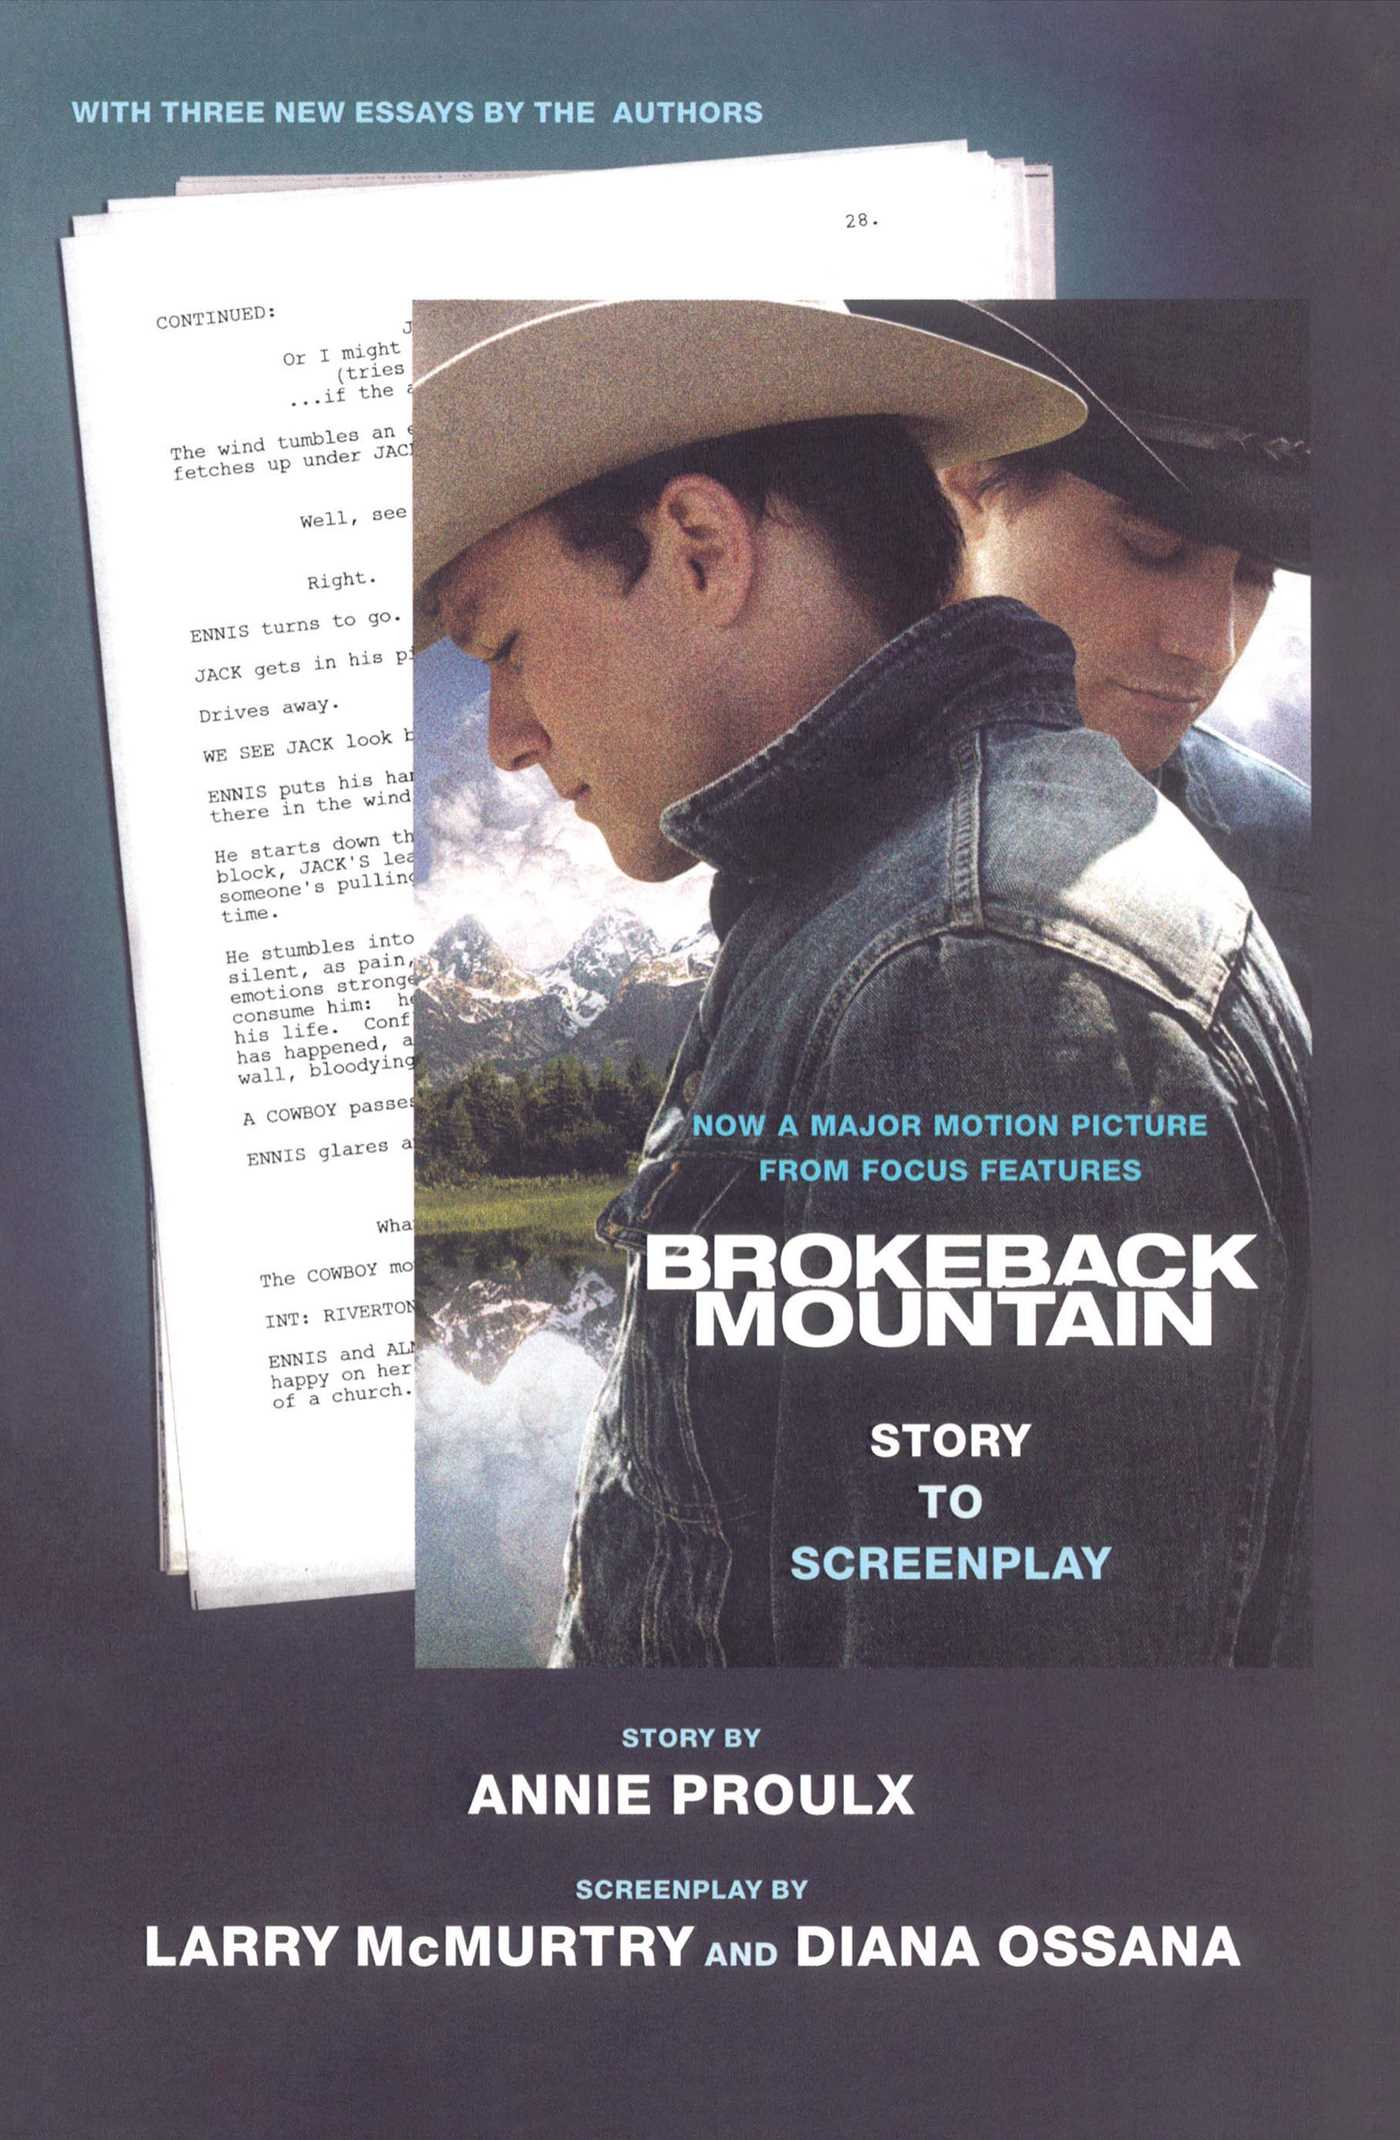 Brokeback-mountain-story-to-screenplay-9781439188576_hr